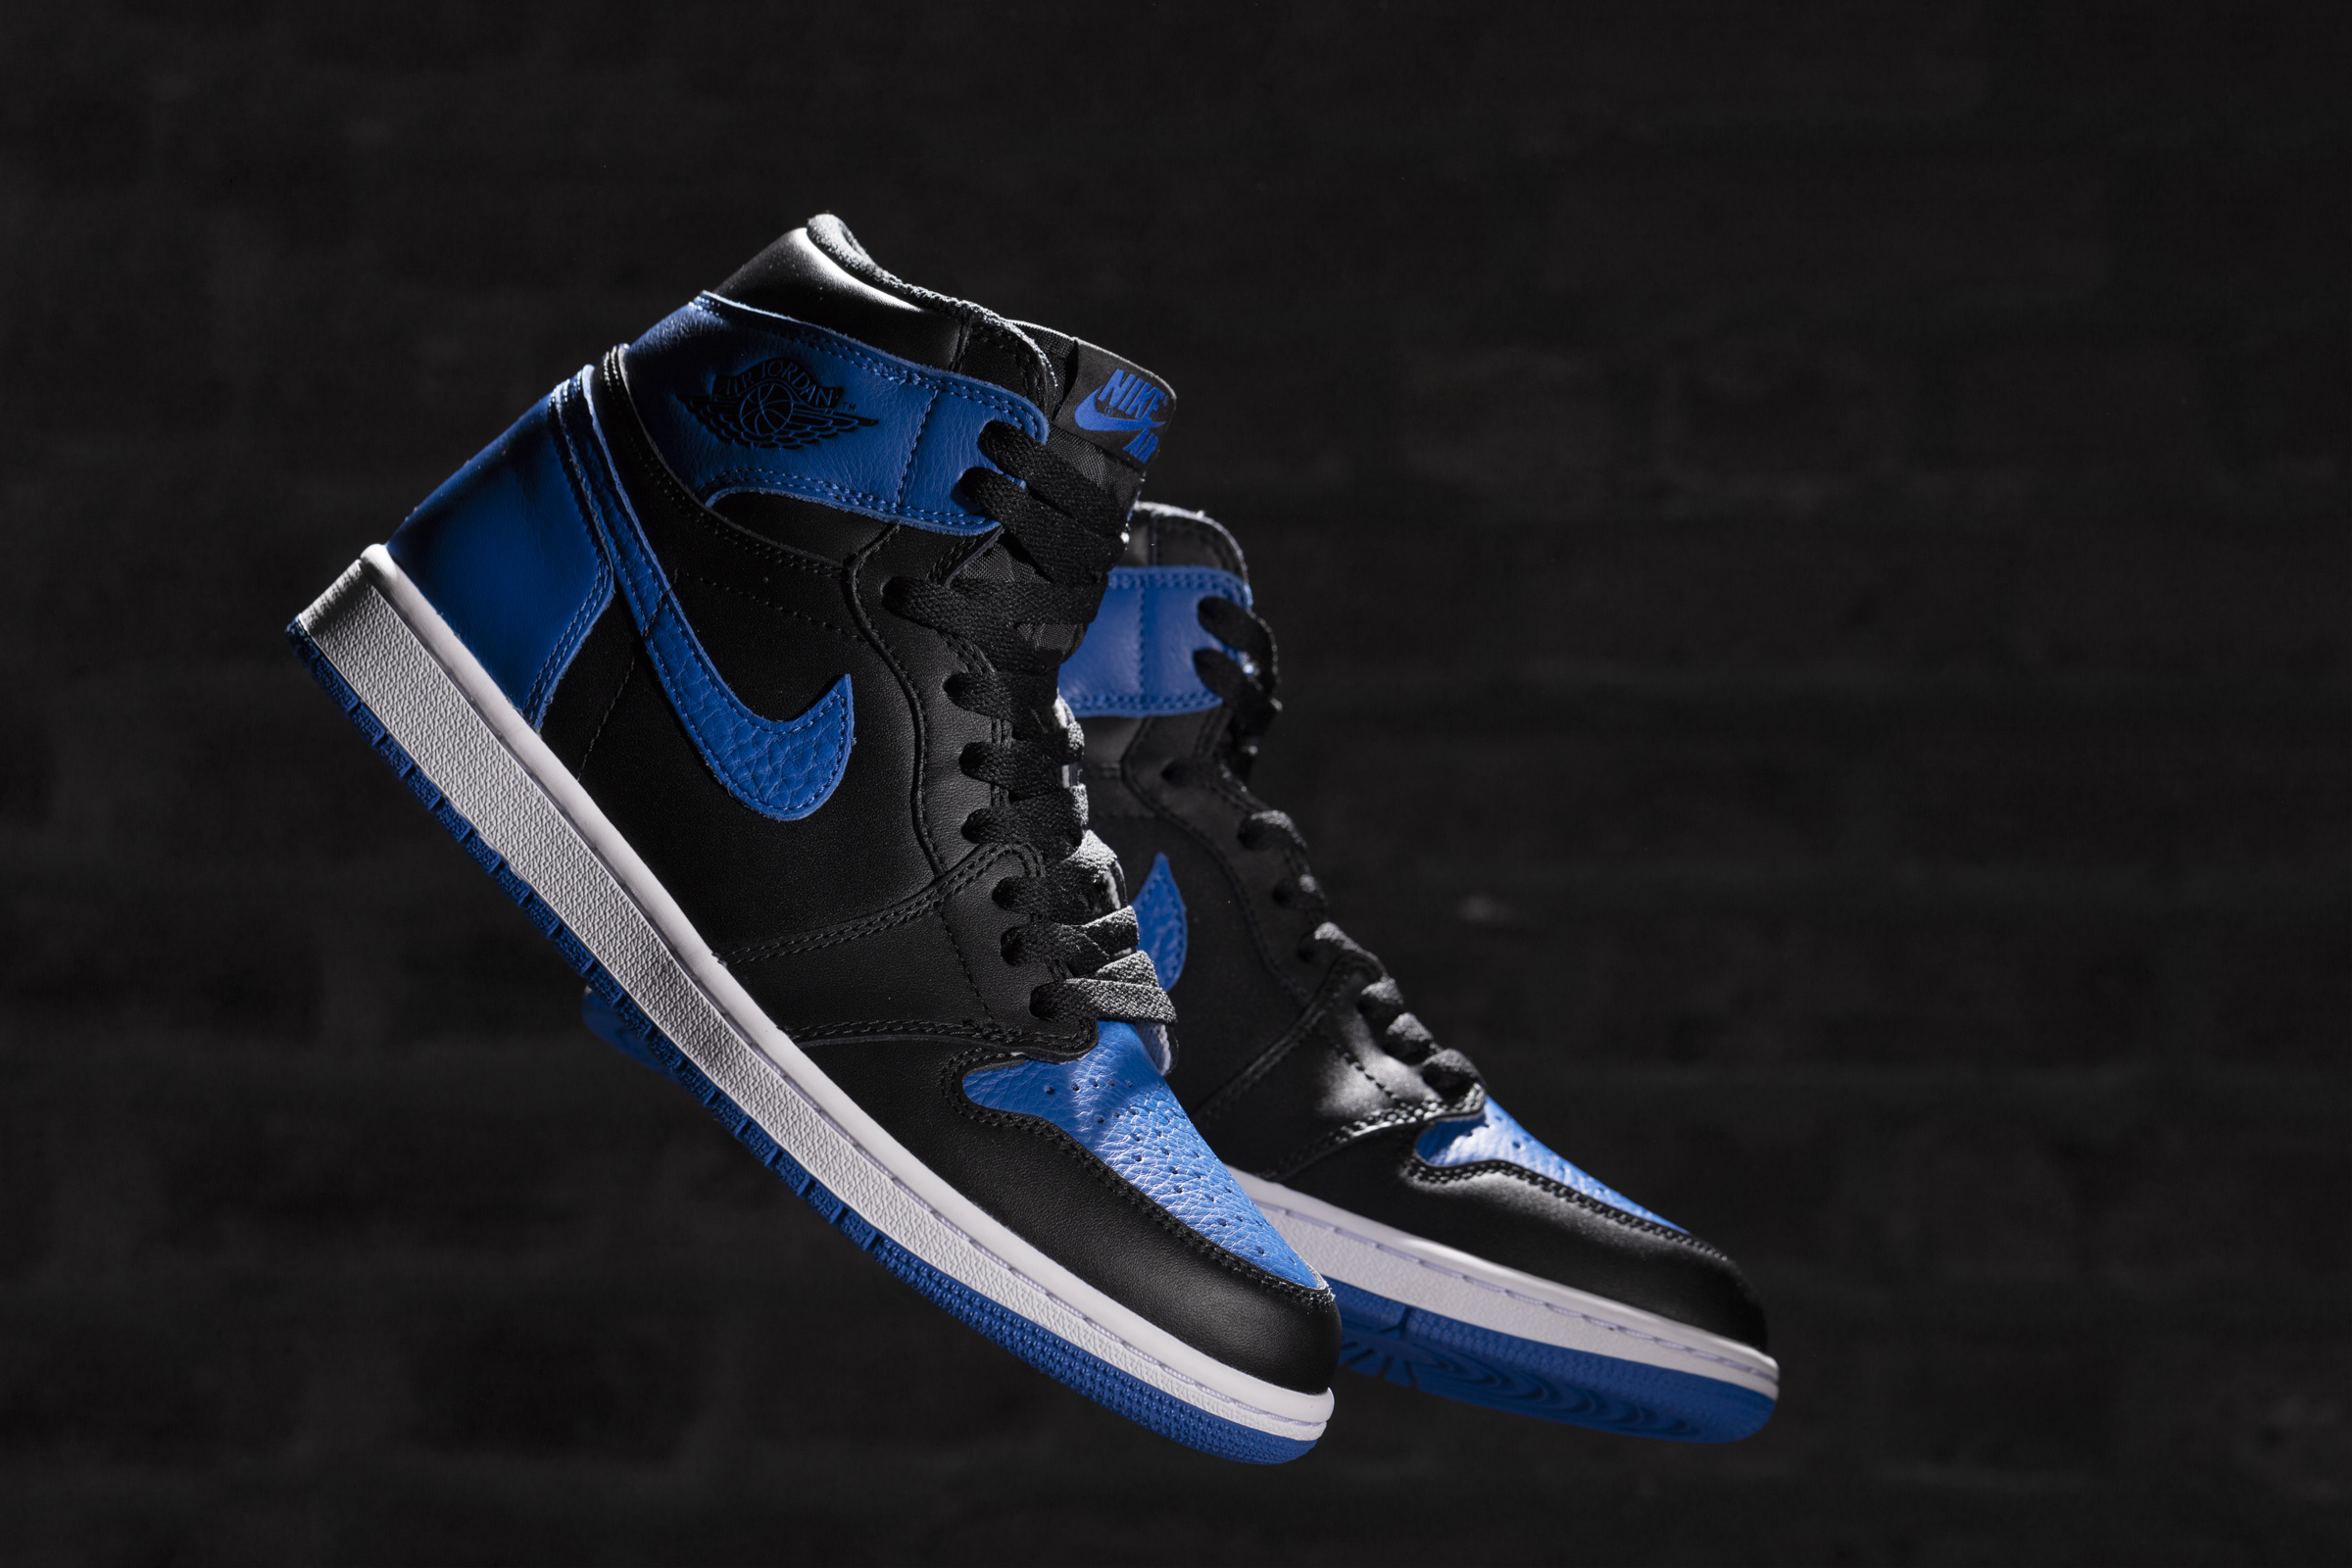 6e9d5346e66b0d Air Jordan 1 Retro High OG Royal 2017 - Air 23 - Air Jordan Release ...